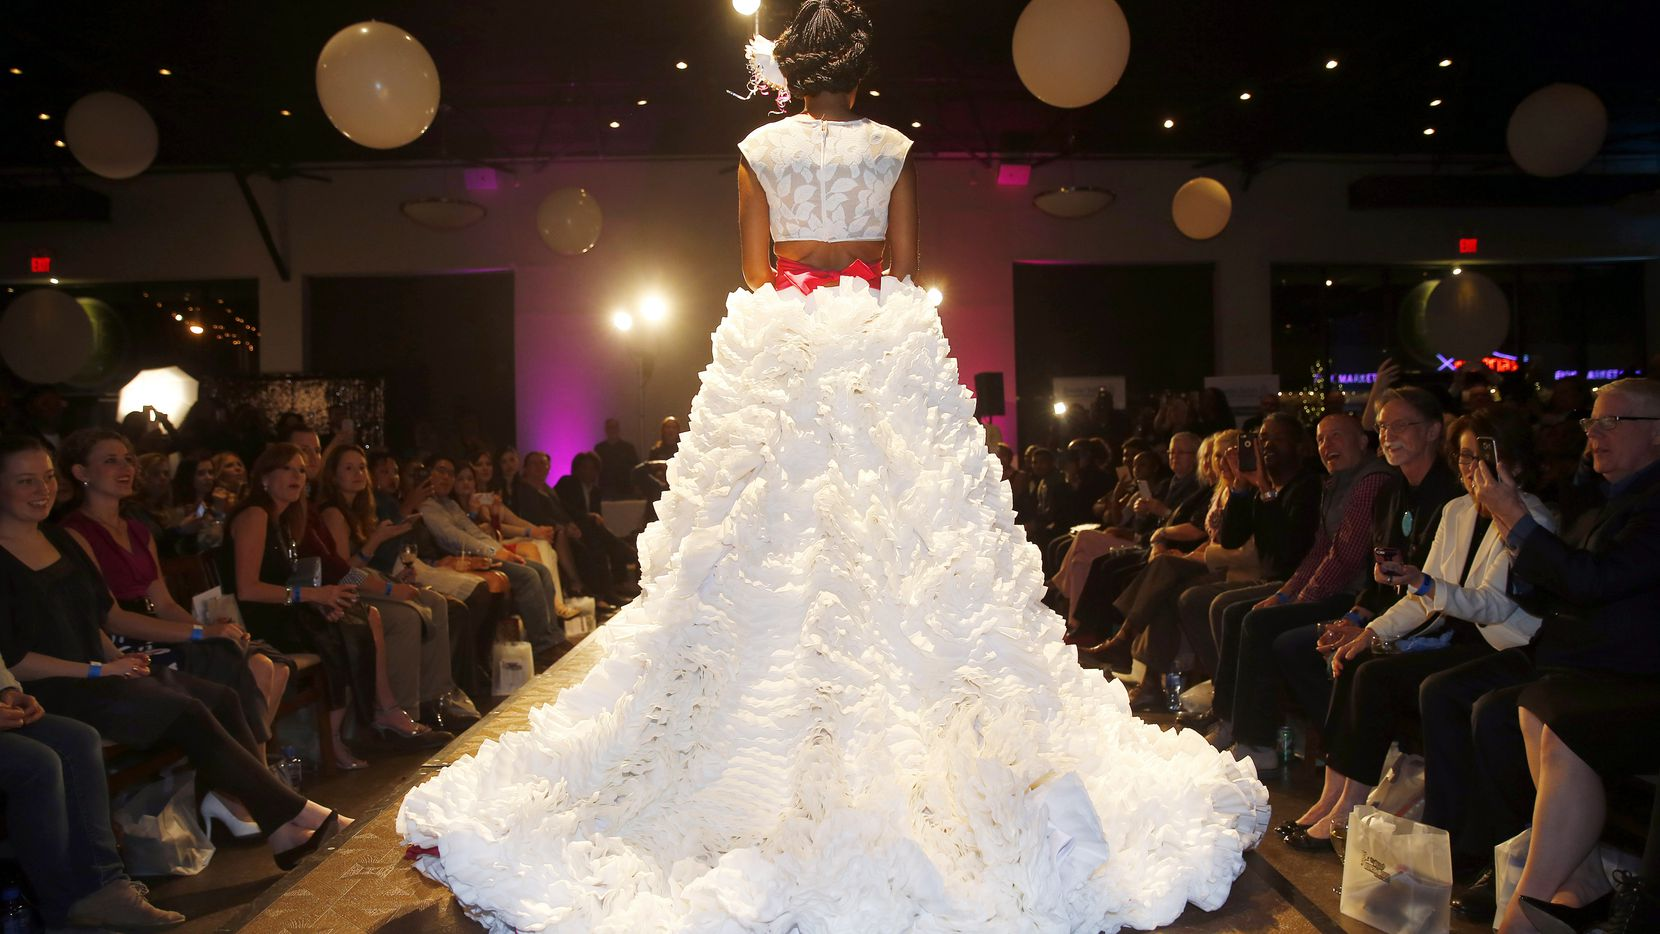 Model Rosie Lawrence models a dress made of coffee filters which was designed by Angel Burrell under the label Tru'anjl during the Food in Fashion event at 3015 in the Trinity Groves area of Dallas.